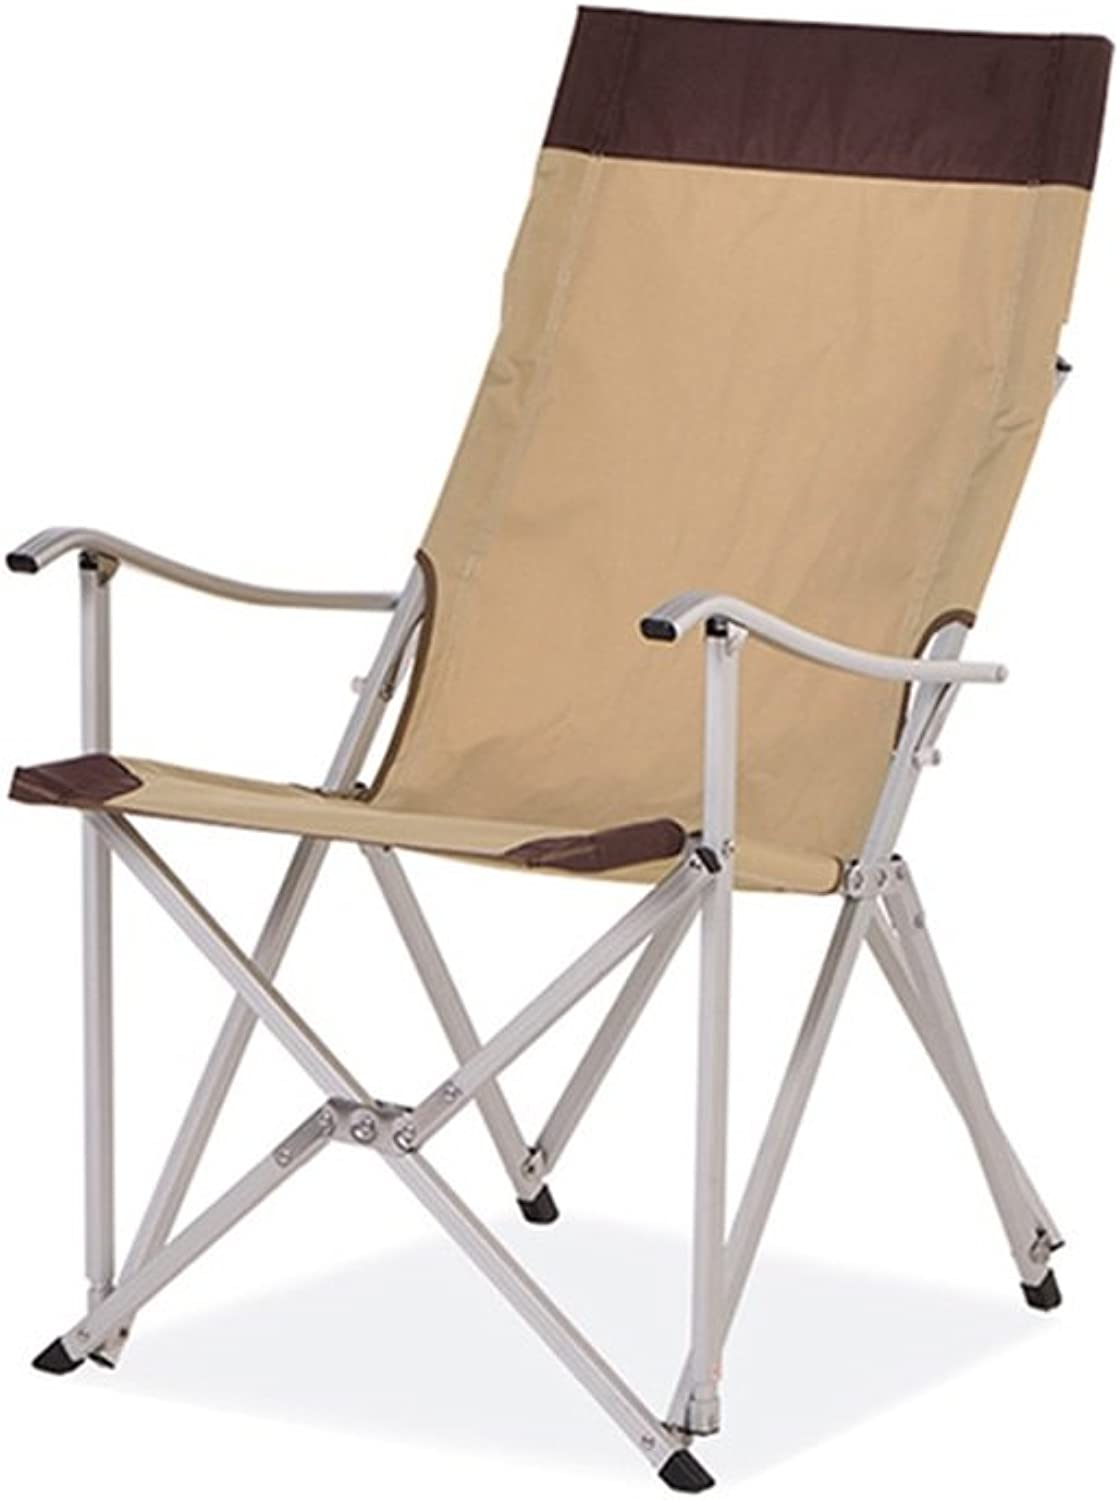 Stool Folding Chair Ergonomics Portable Sturdy Lounge Deck Chair for Fishing Camping